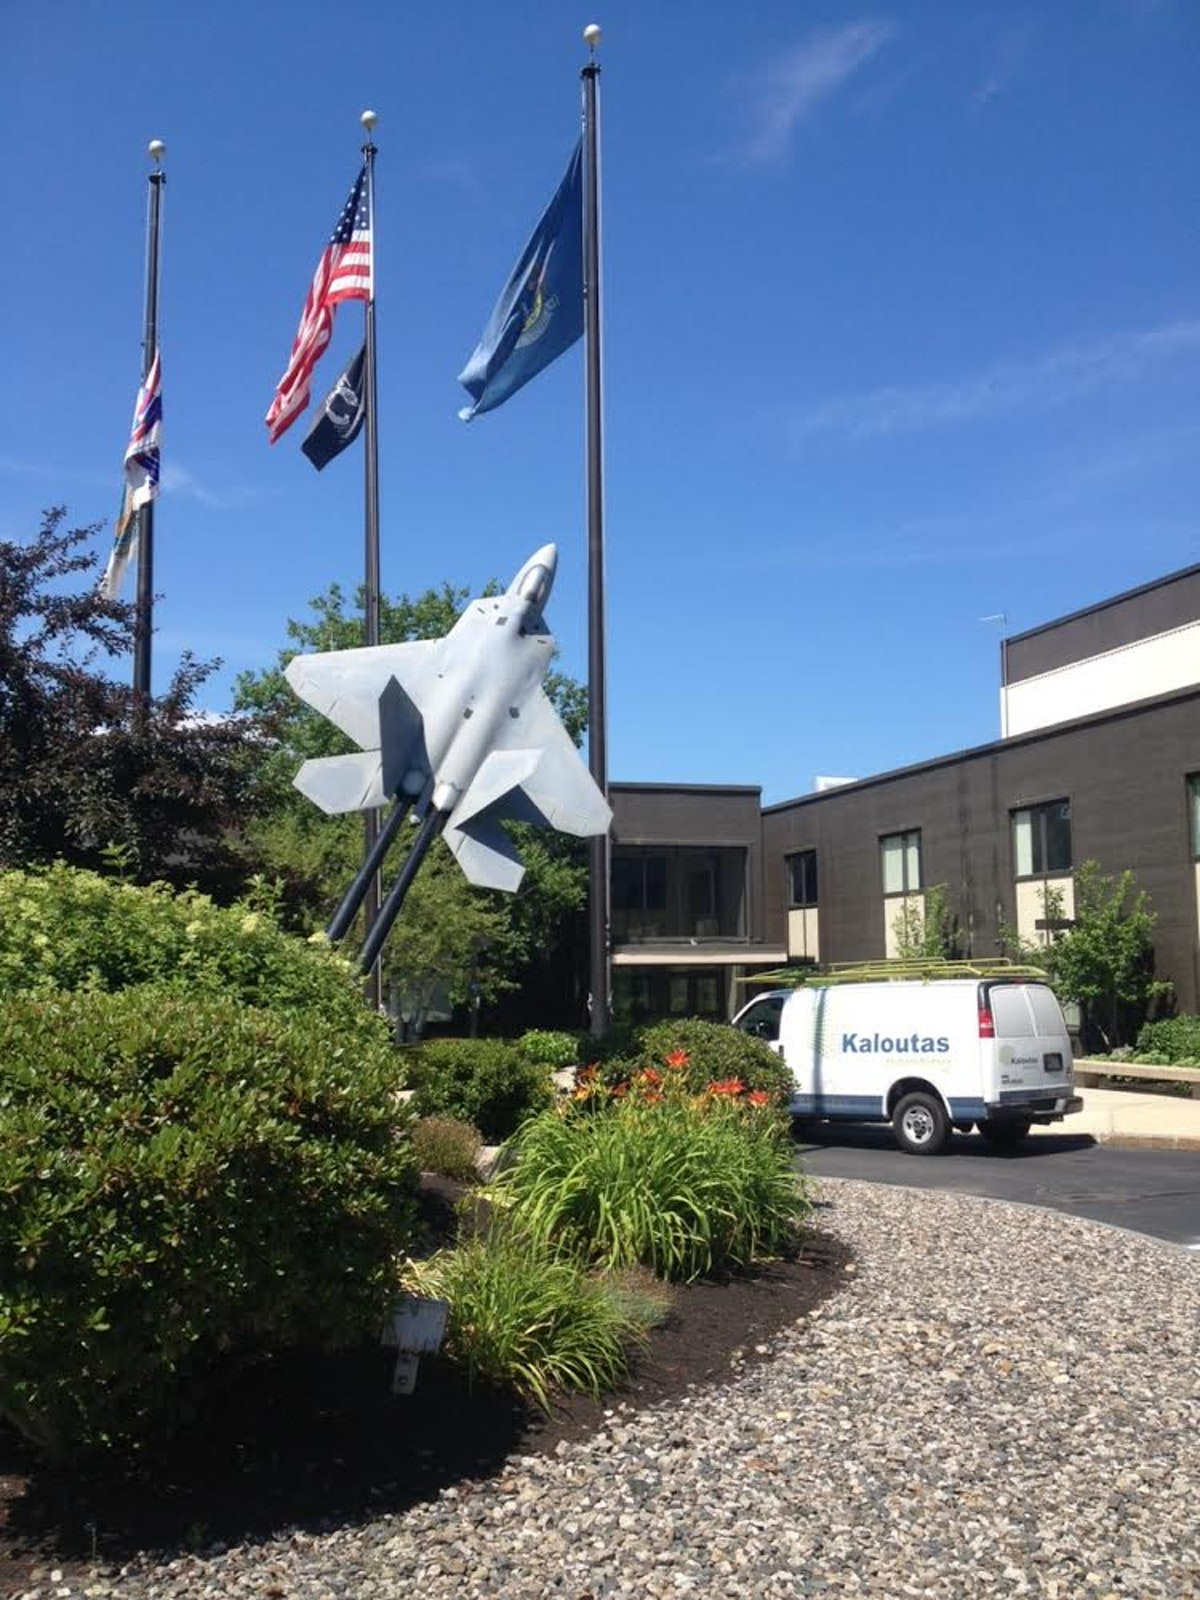 Commercial Painting and Flooring for Pratt & Whitney - South Berwick, Maine